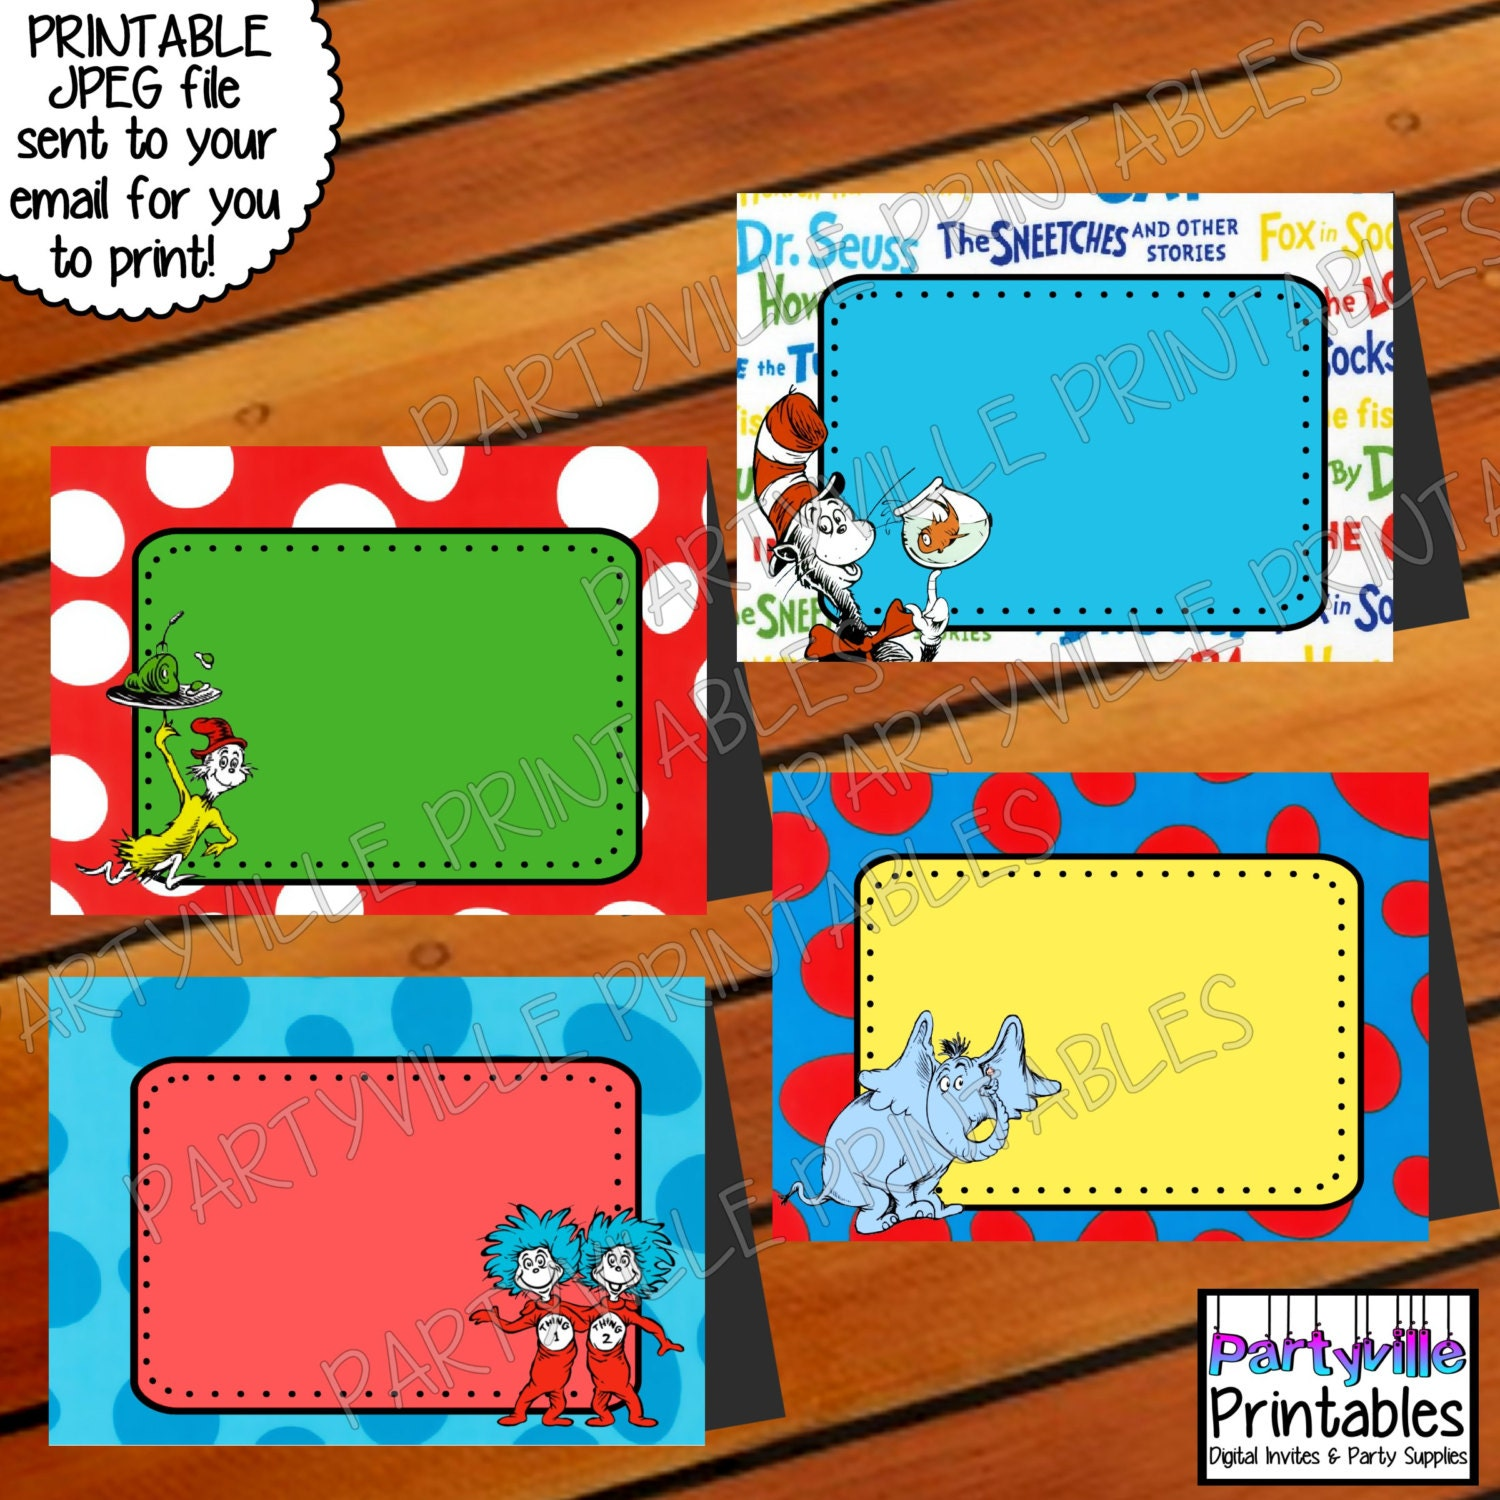 ... Food Tents Dr. Seuss Inspired Place Cards Food Tags - 1500x1500 - jpeg